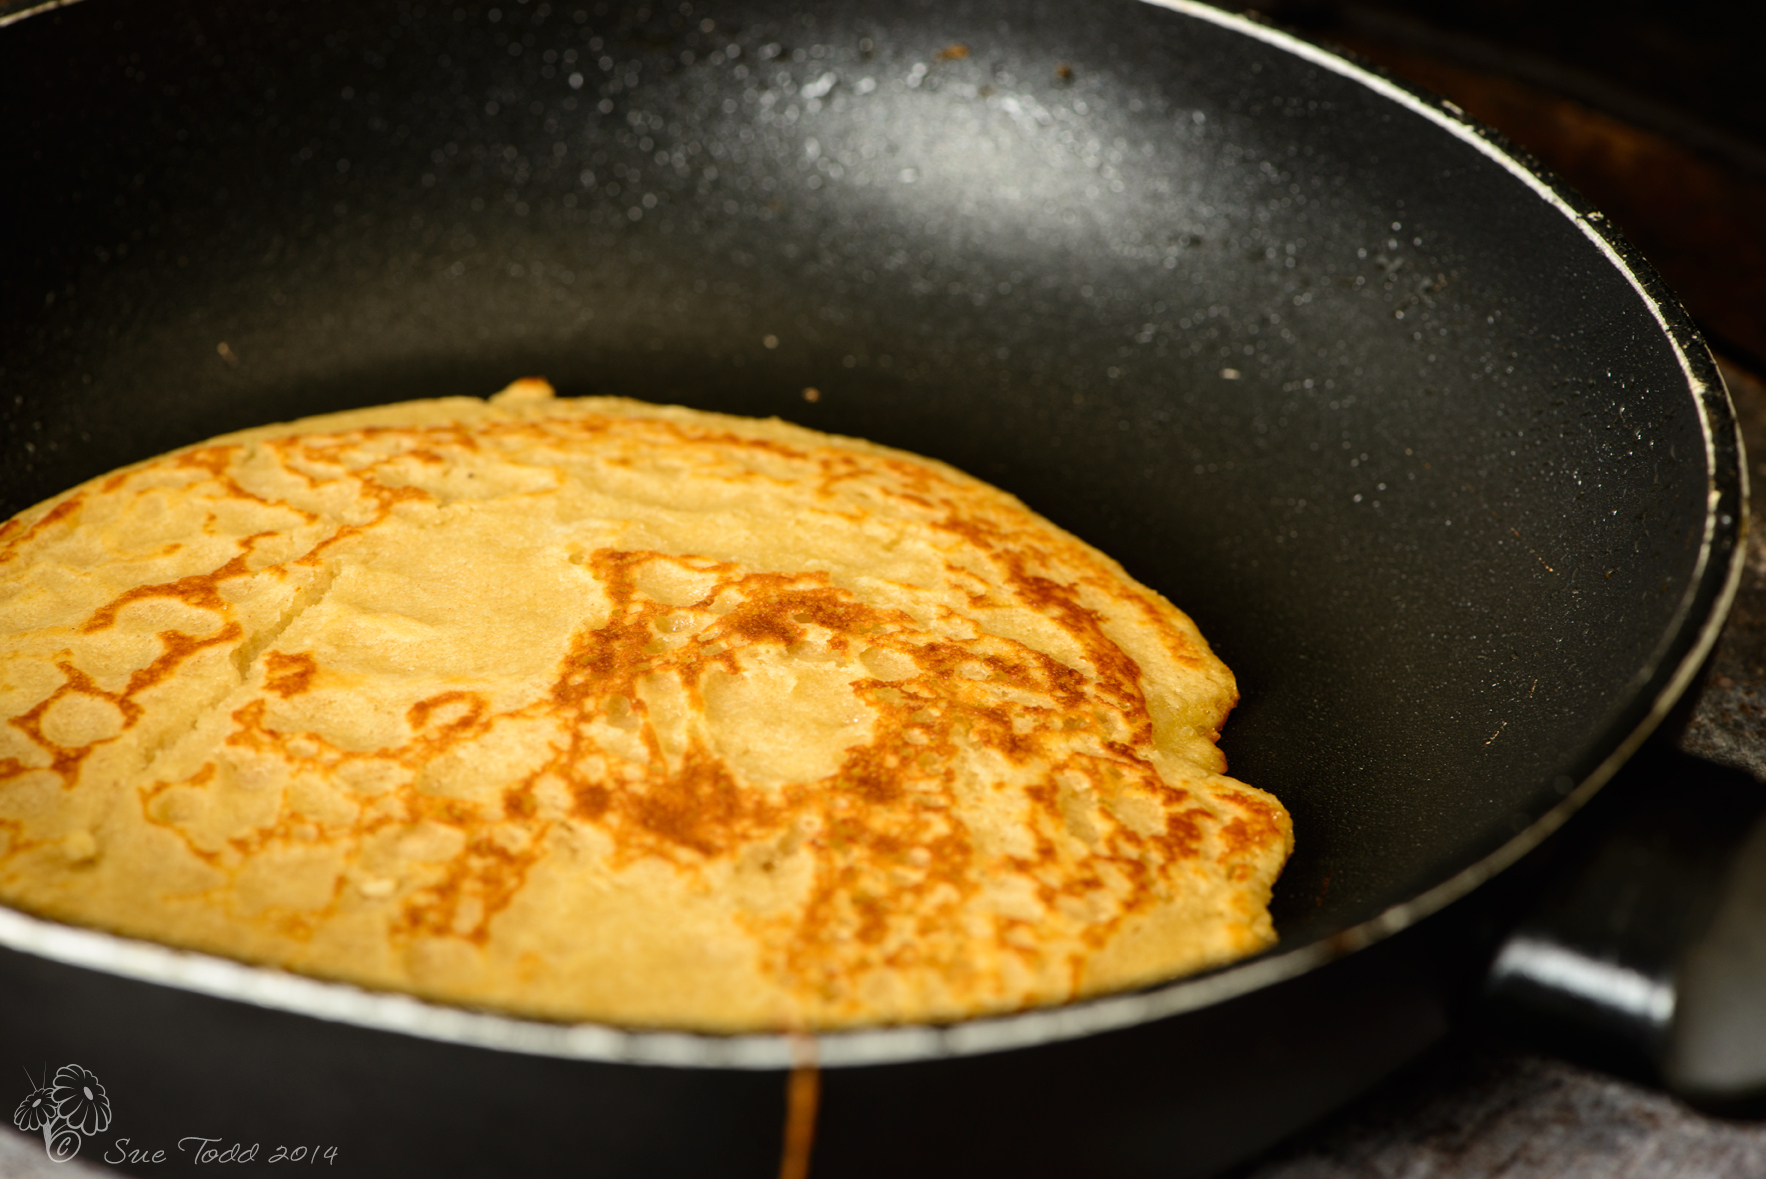 Pancakes for Breakfast © Sue Todd 2014